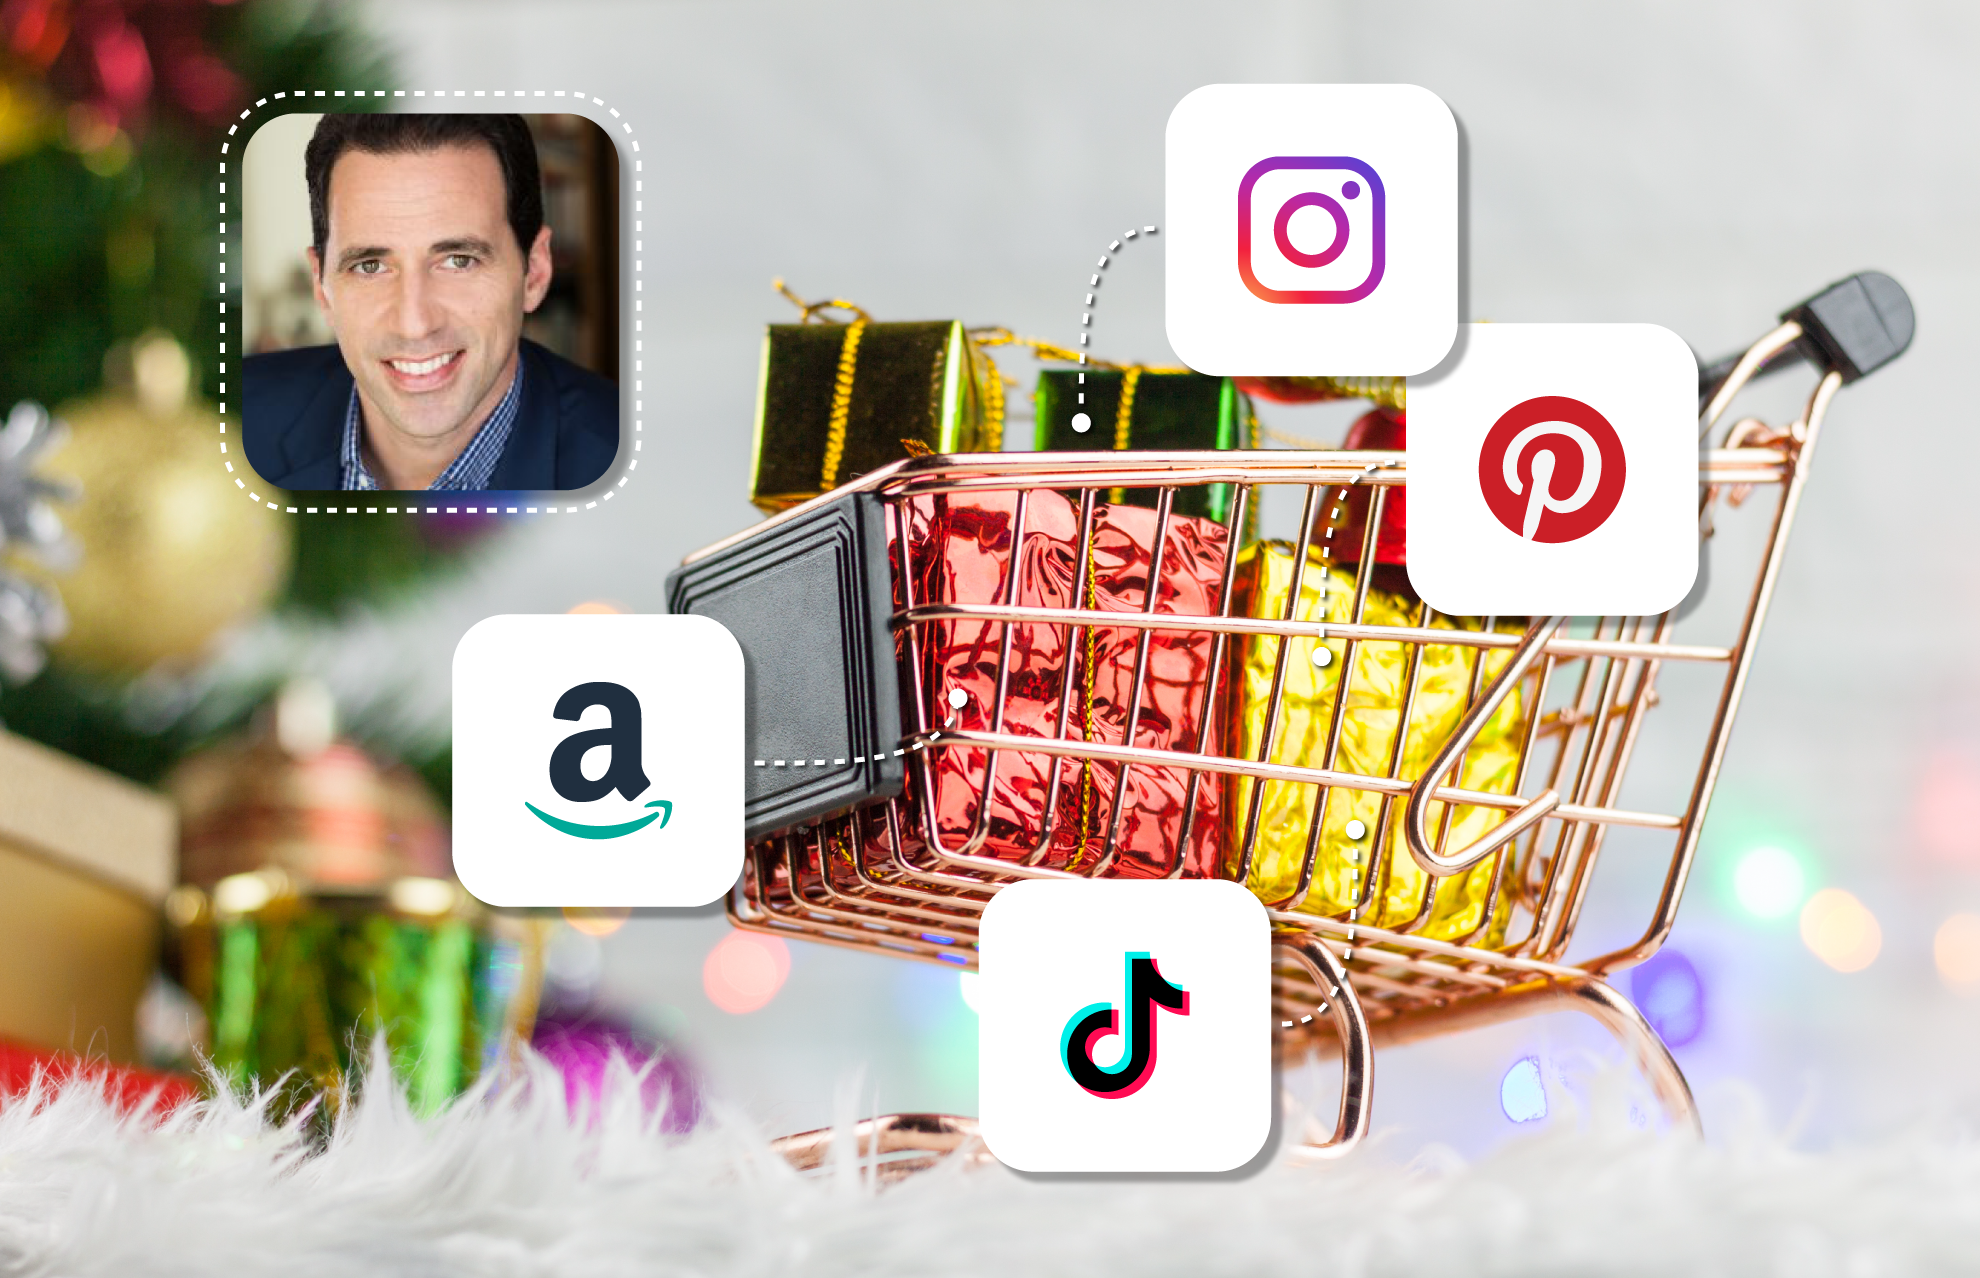 Chris Dessi's 4 holiday shopping habits and how they impact retailers